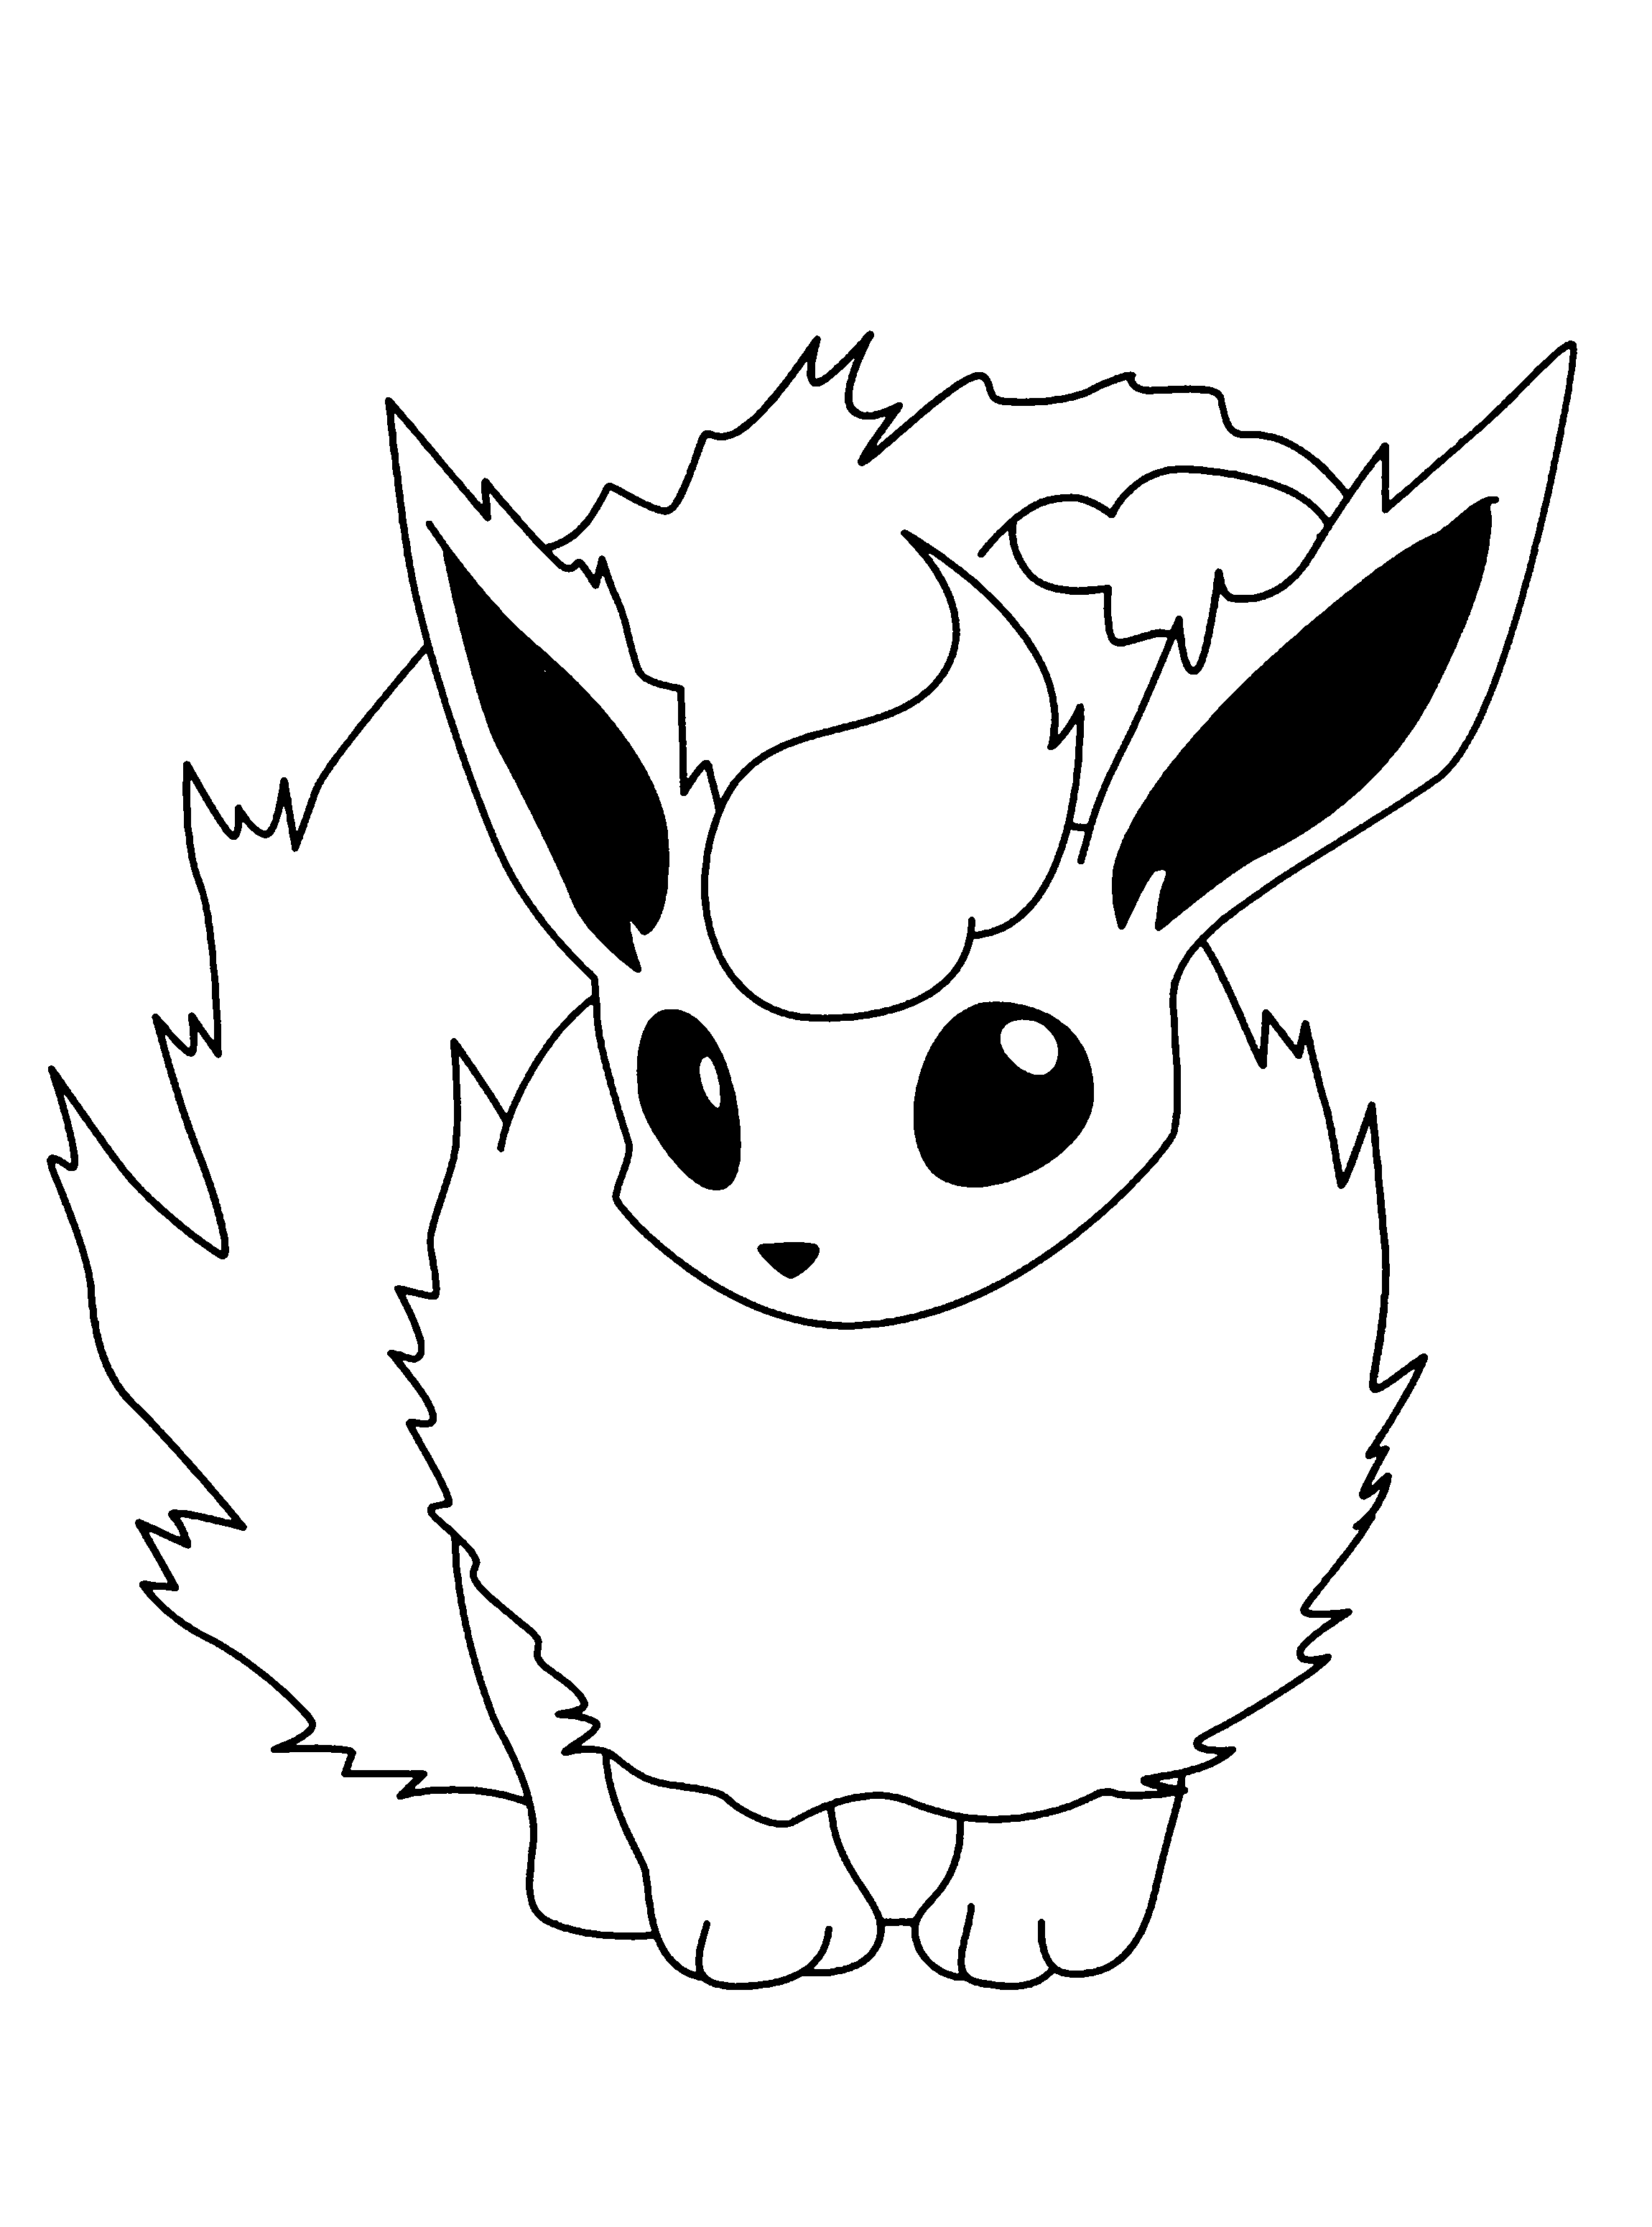 2300x3100 Incridible Raskraska Pokemon For Pokemon Coloring Pages On With Hd